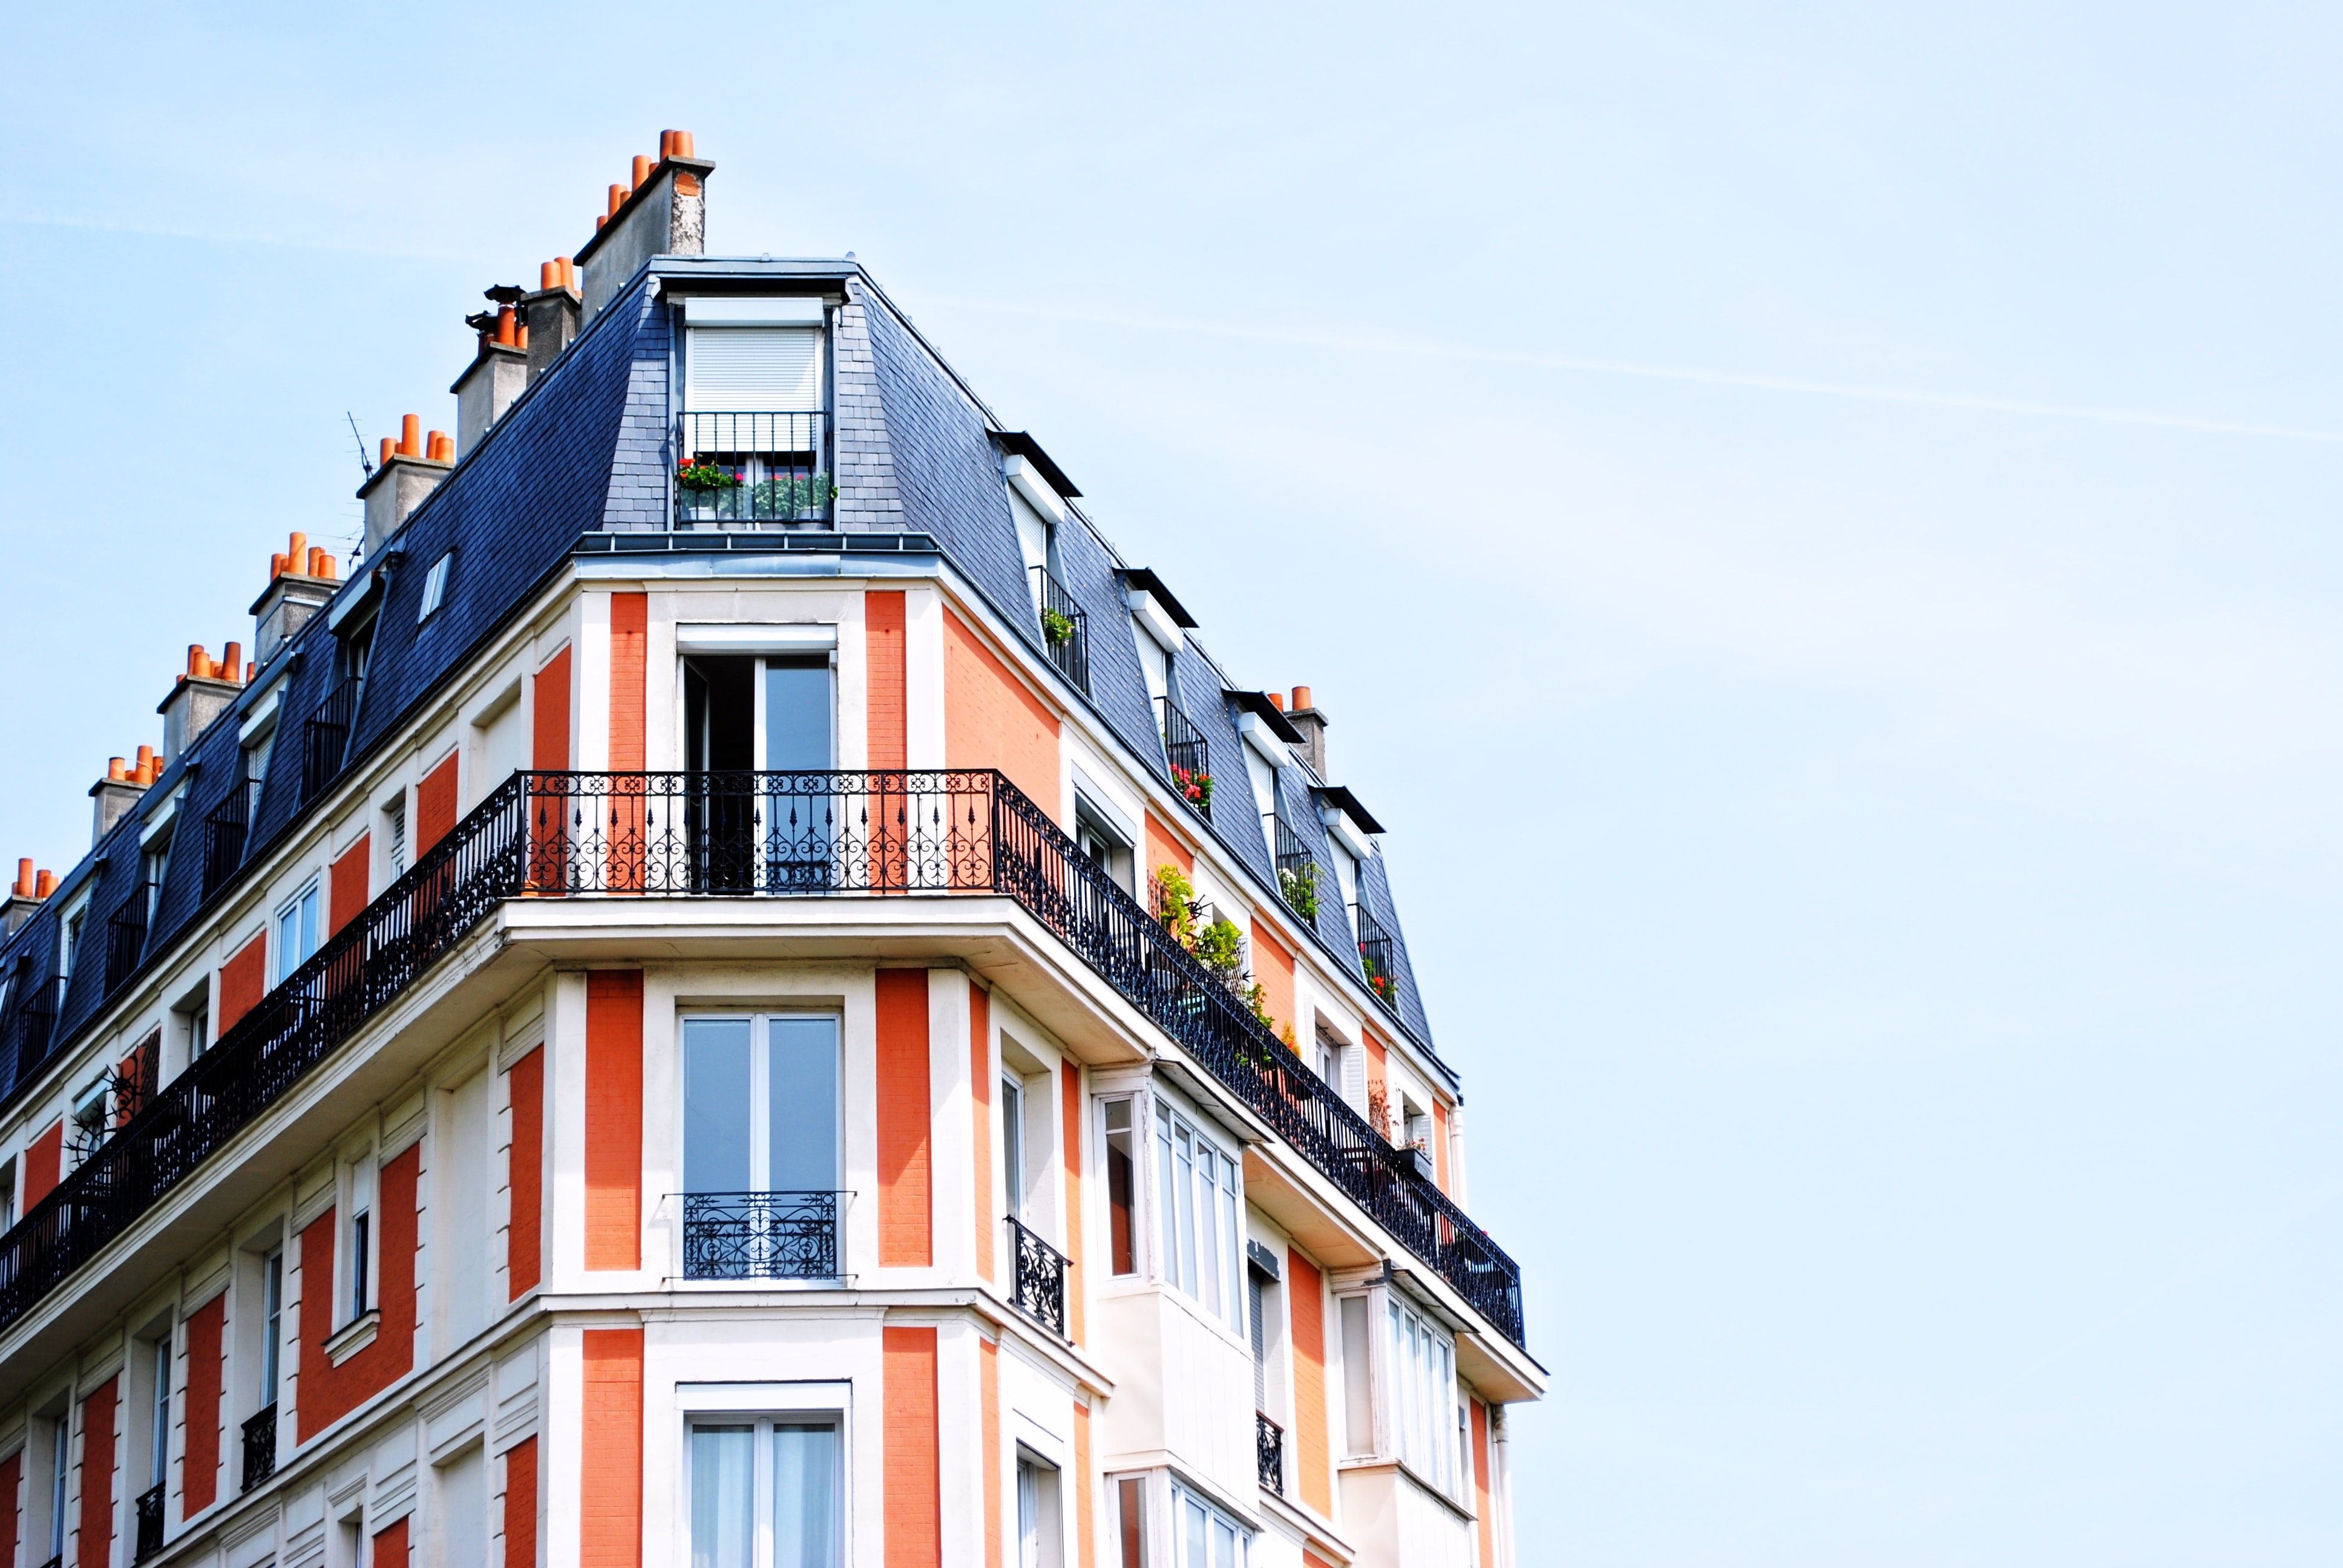 A bright, colorful shot of the corner of a blue and orange building in Paris